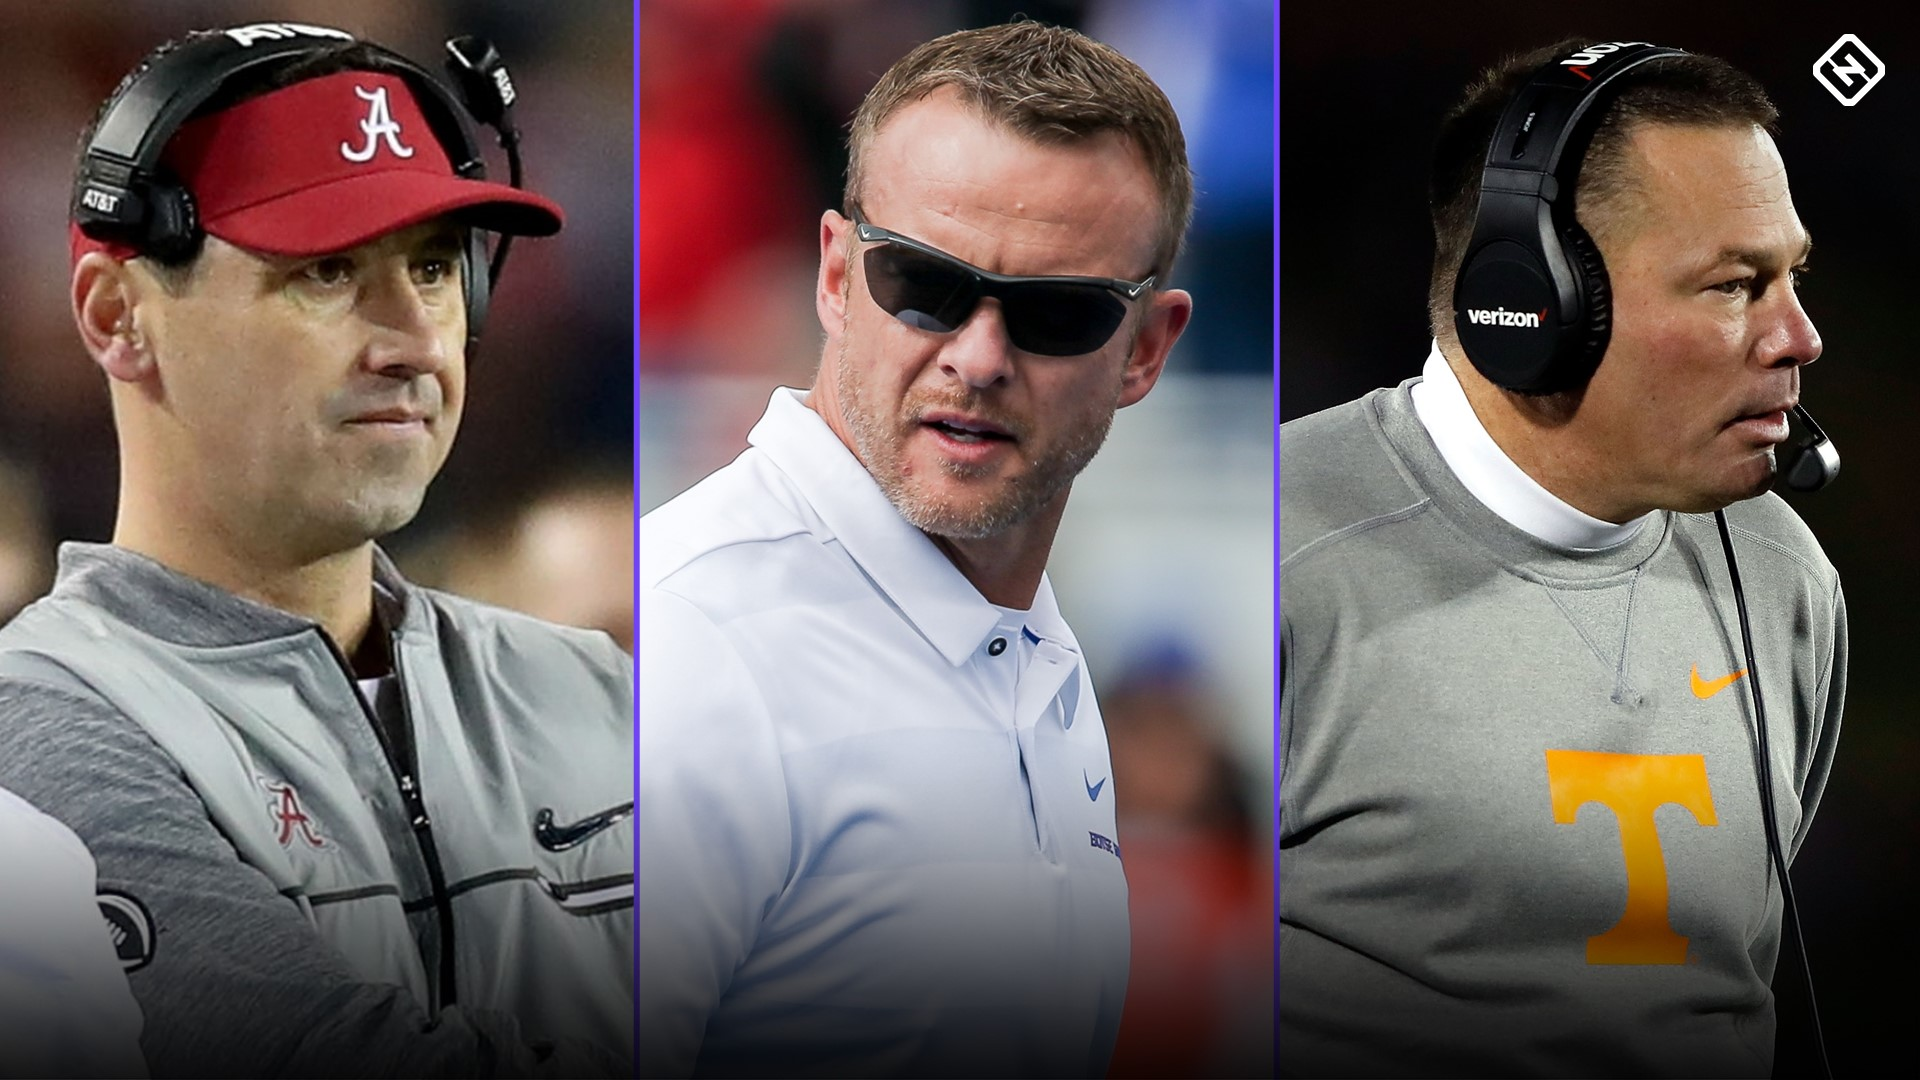 Meet the first-year FBS coaches for 2021: SEC shuffle continues across Power 5, Group of 5